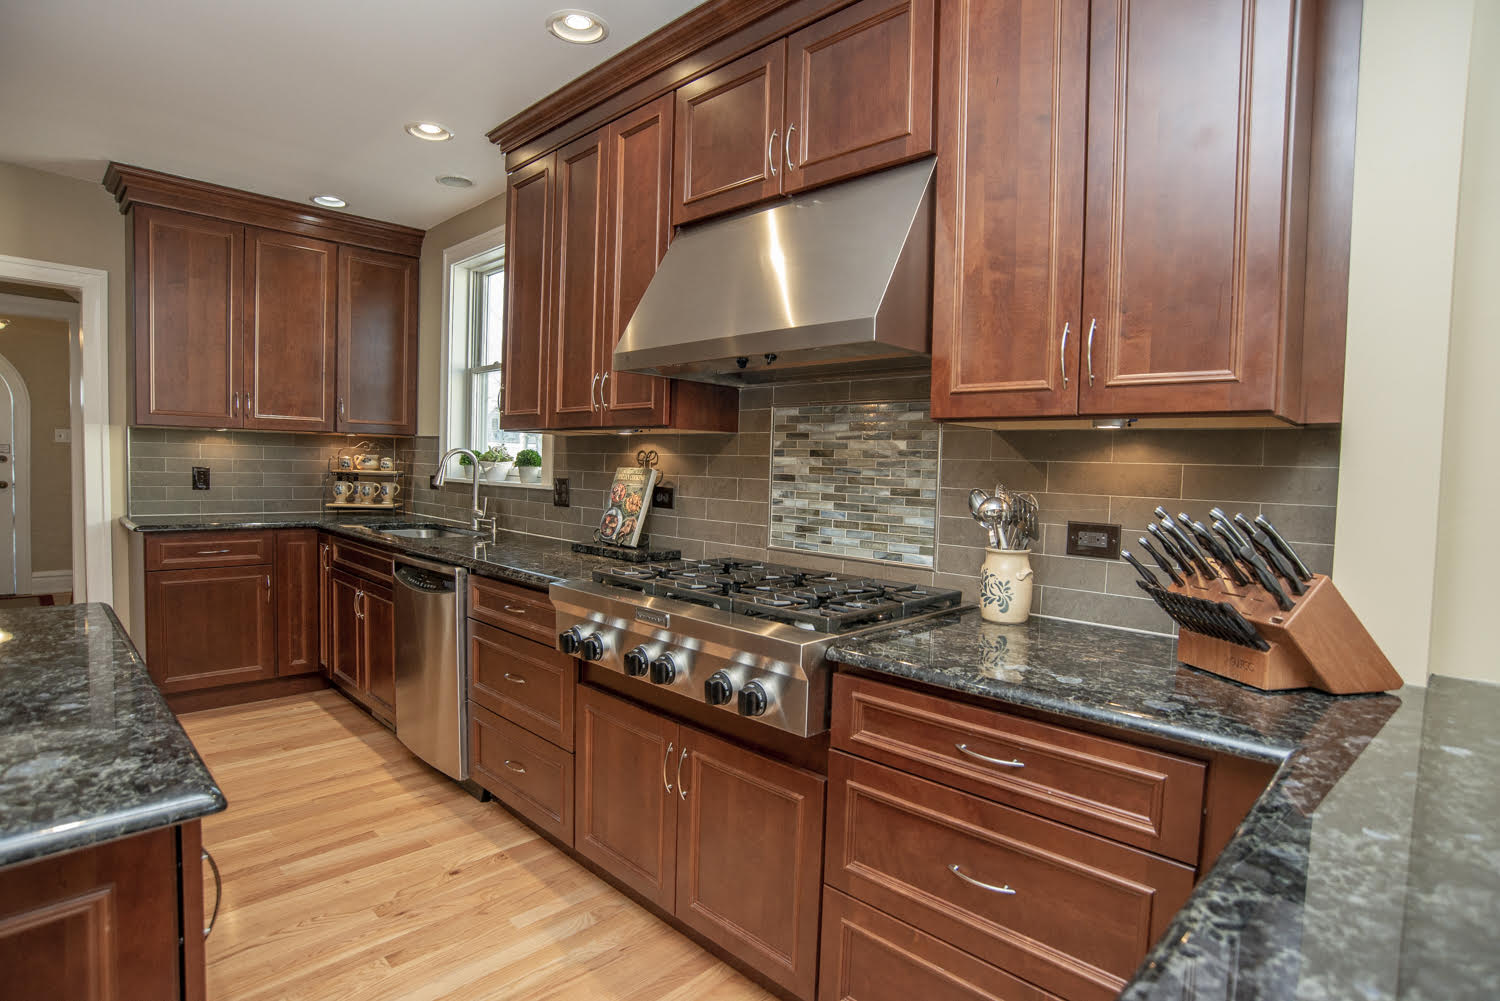 GENEVA IL. KITCHEN UPDATING & RENOVATIONS. CUSTOM REMODELING & KITCHEN UPDATES